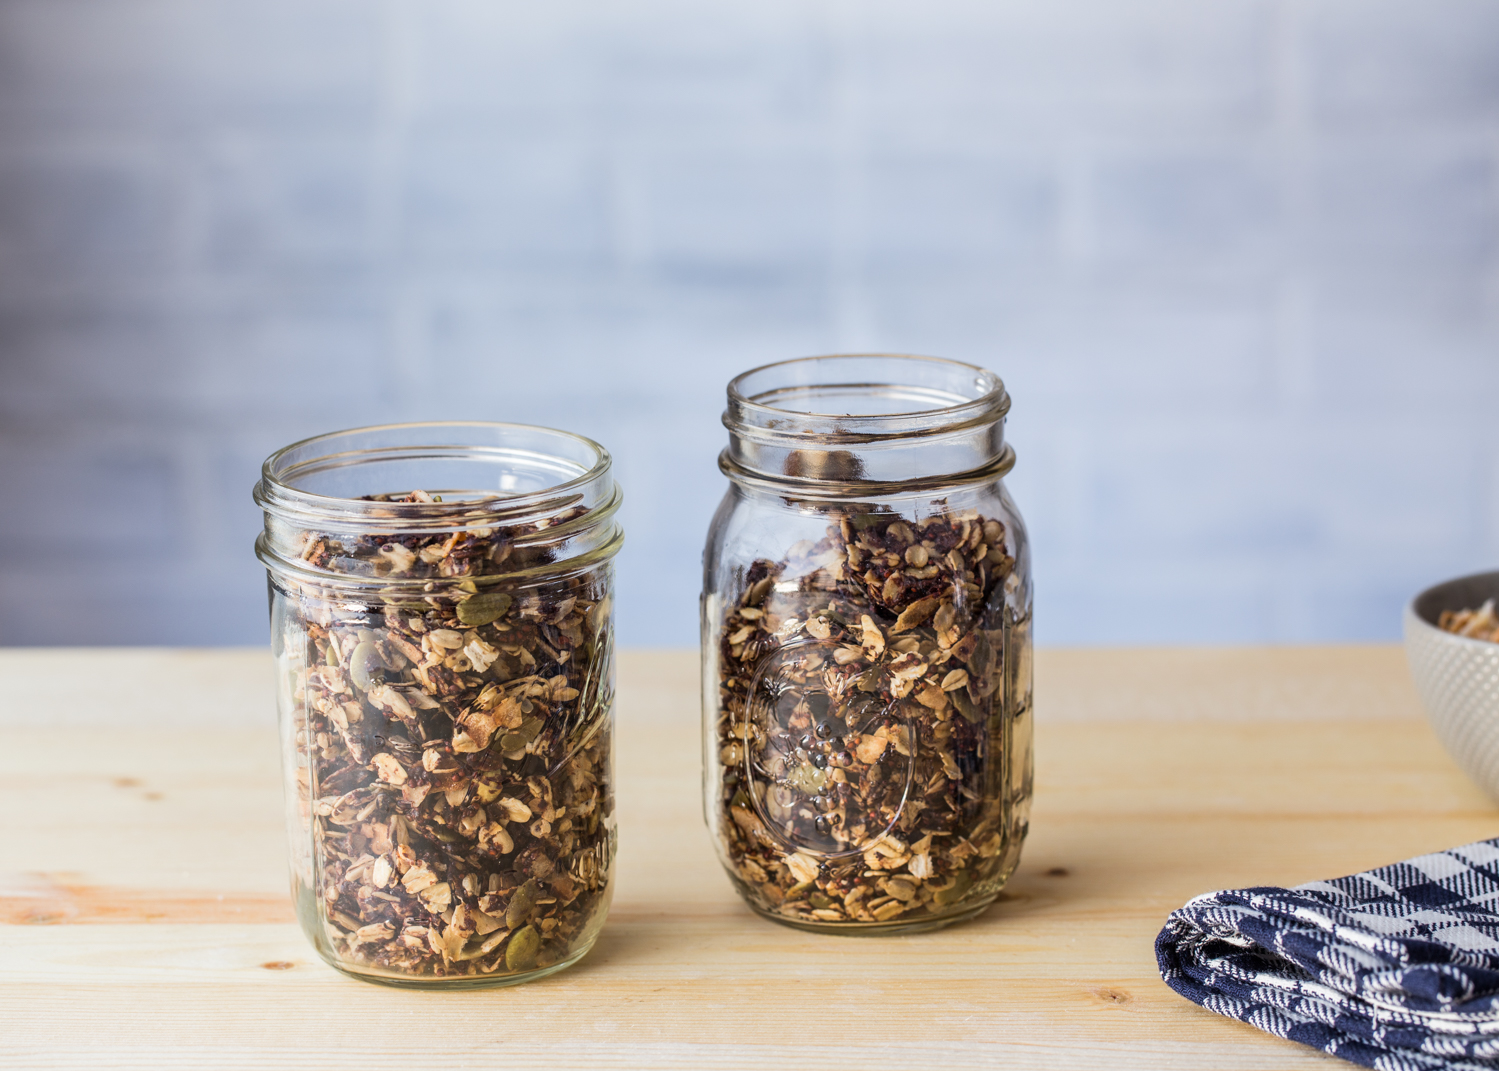 Chocolate Coconut Granola is great for breakfast or a quick snack